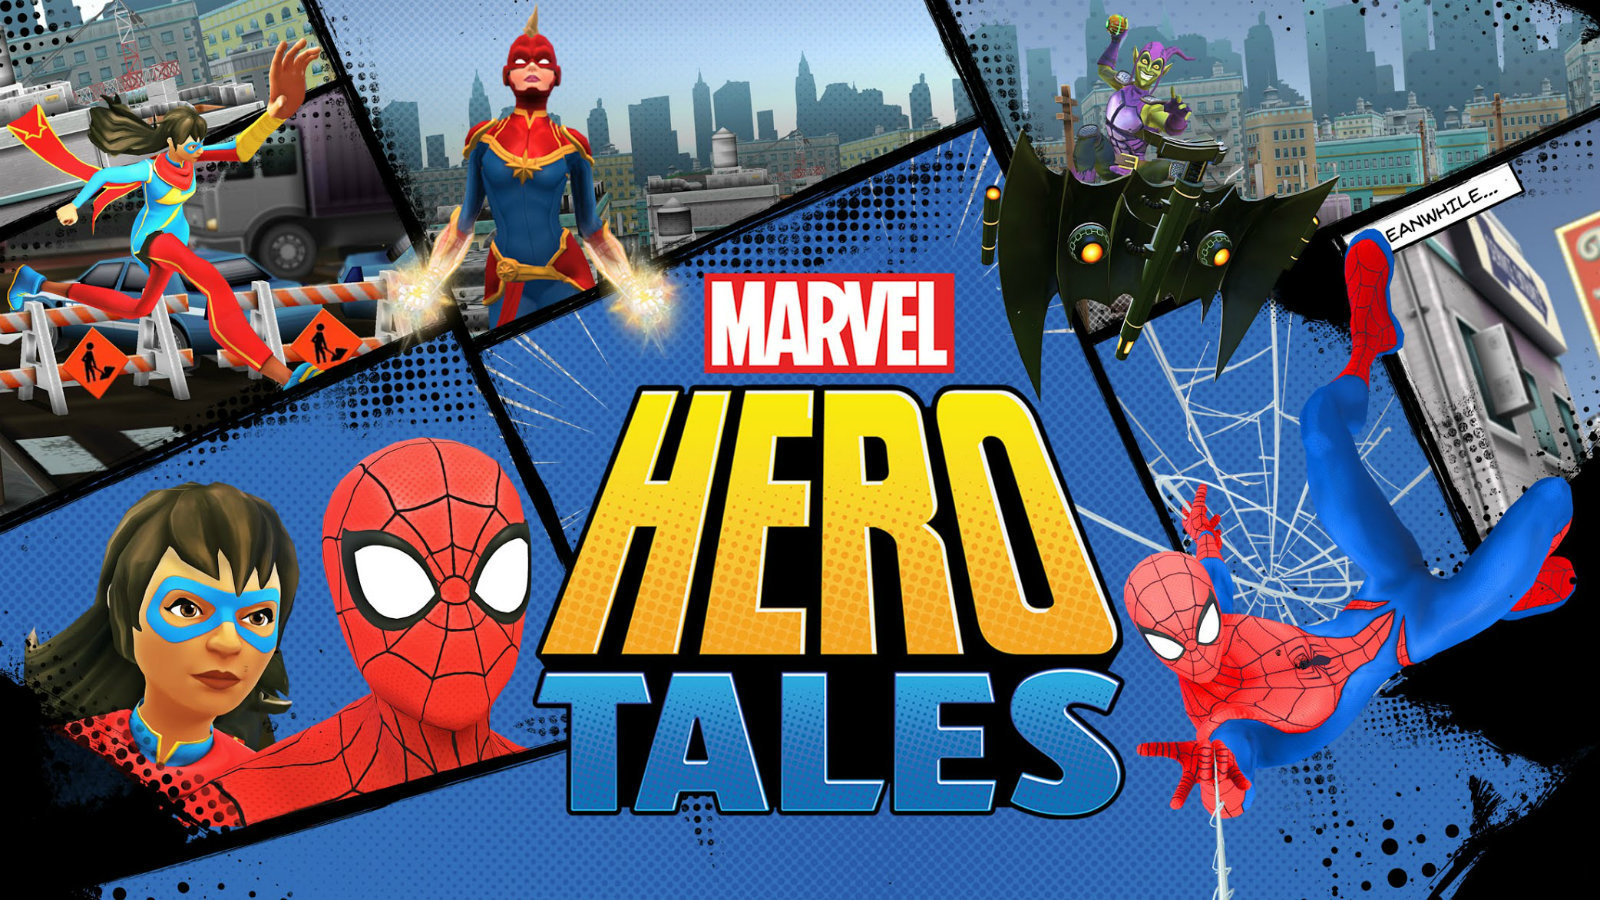 Marvel Hero Tales allows kids to learn to read by forming their own Superhero Stories